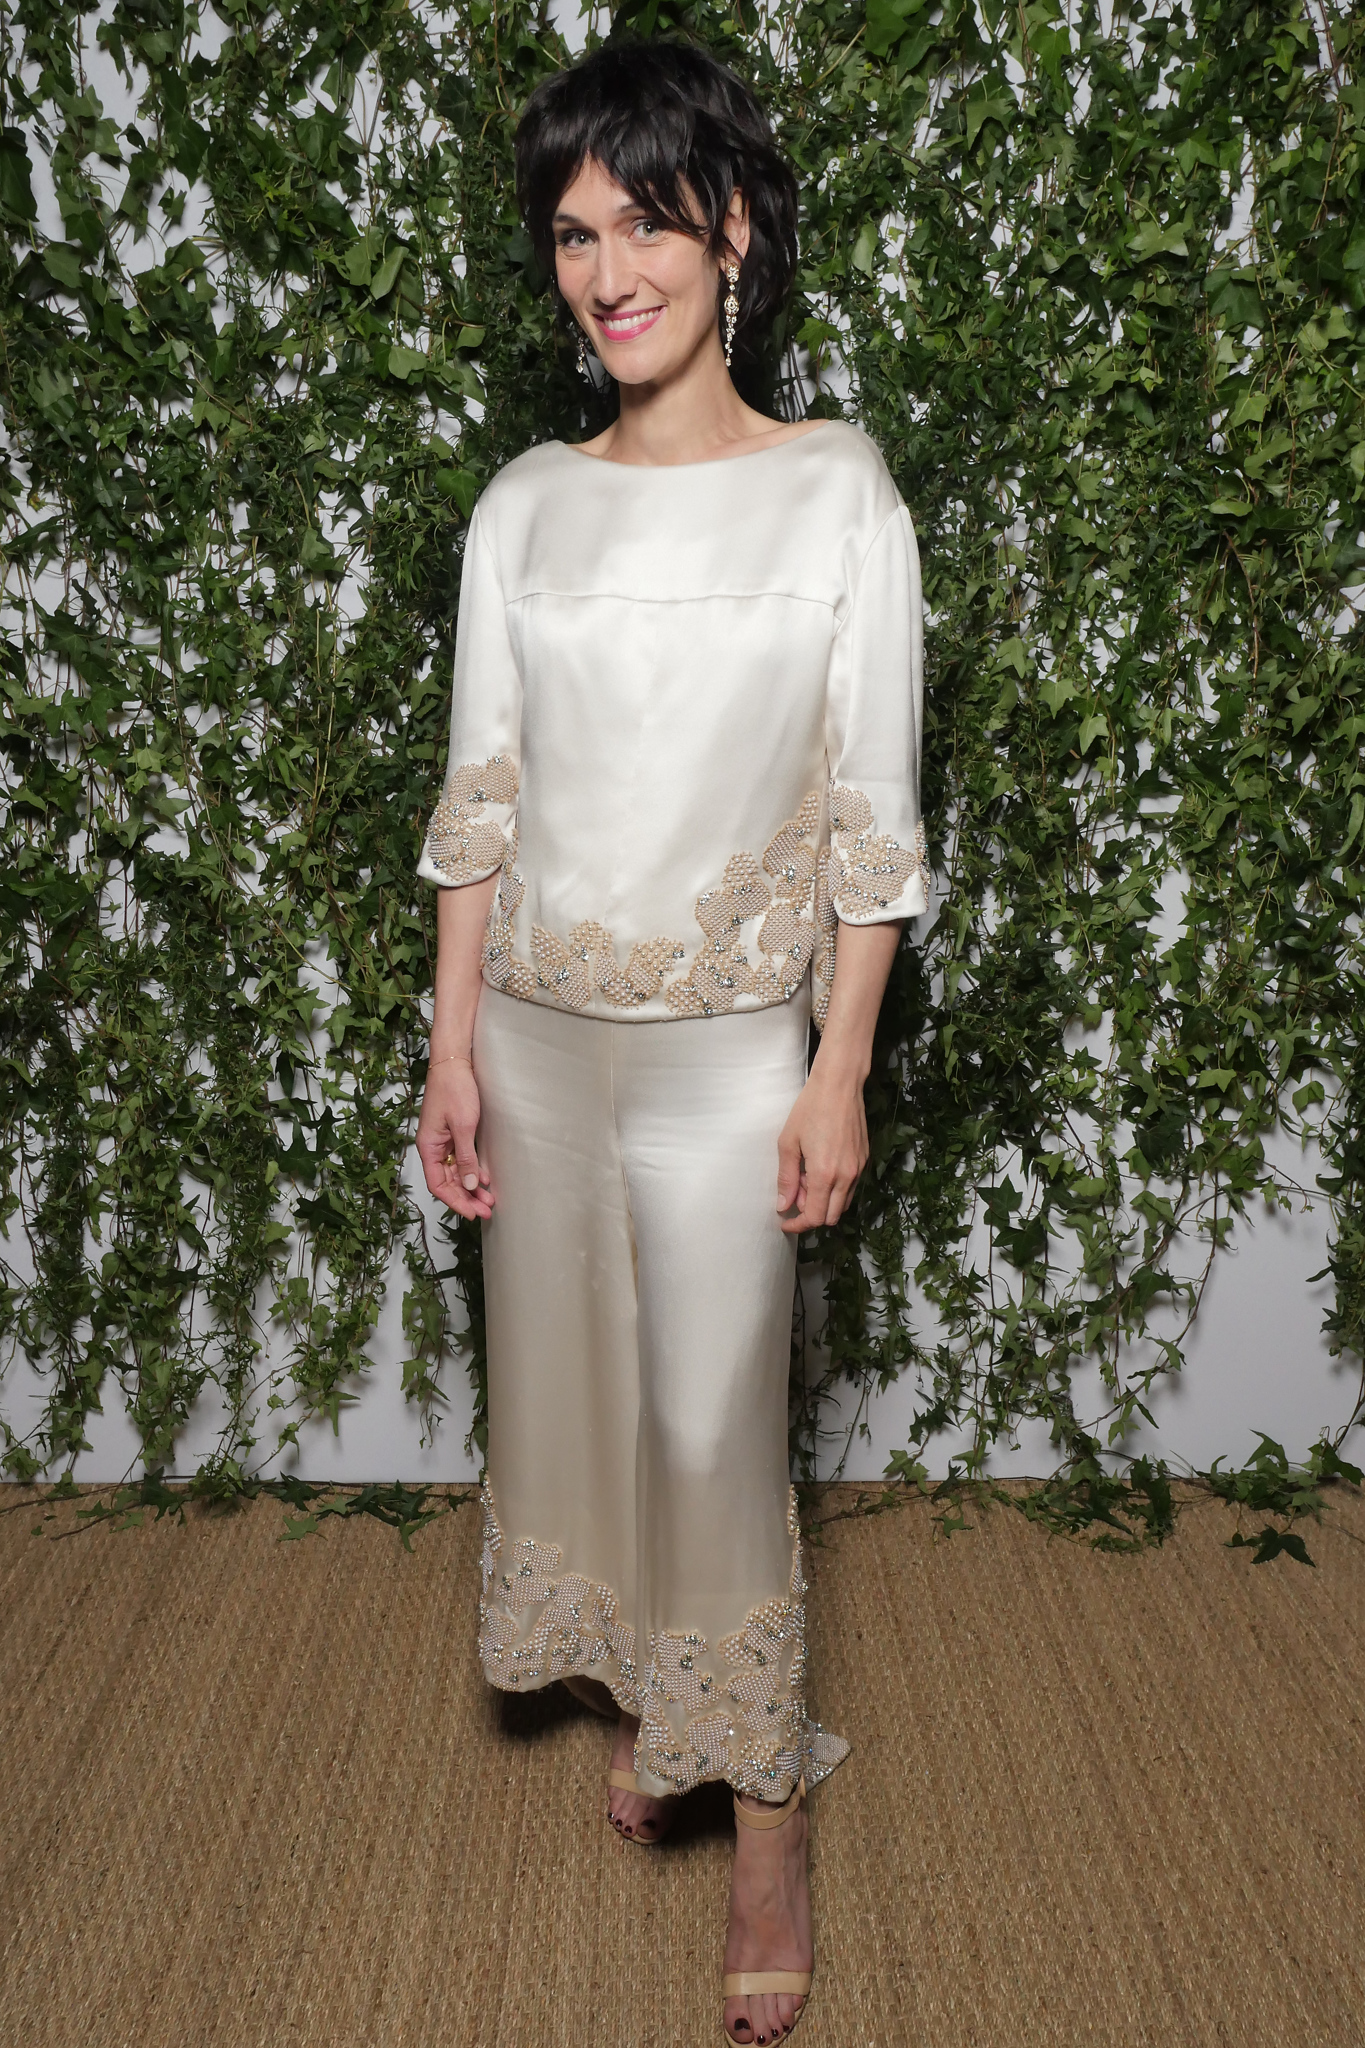 Clotilde Hesme at the Vanity Fair France and Chanel Dinner in Cannes